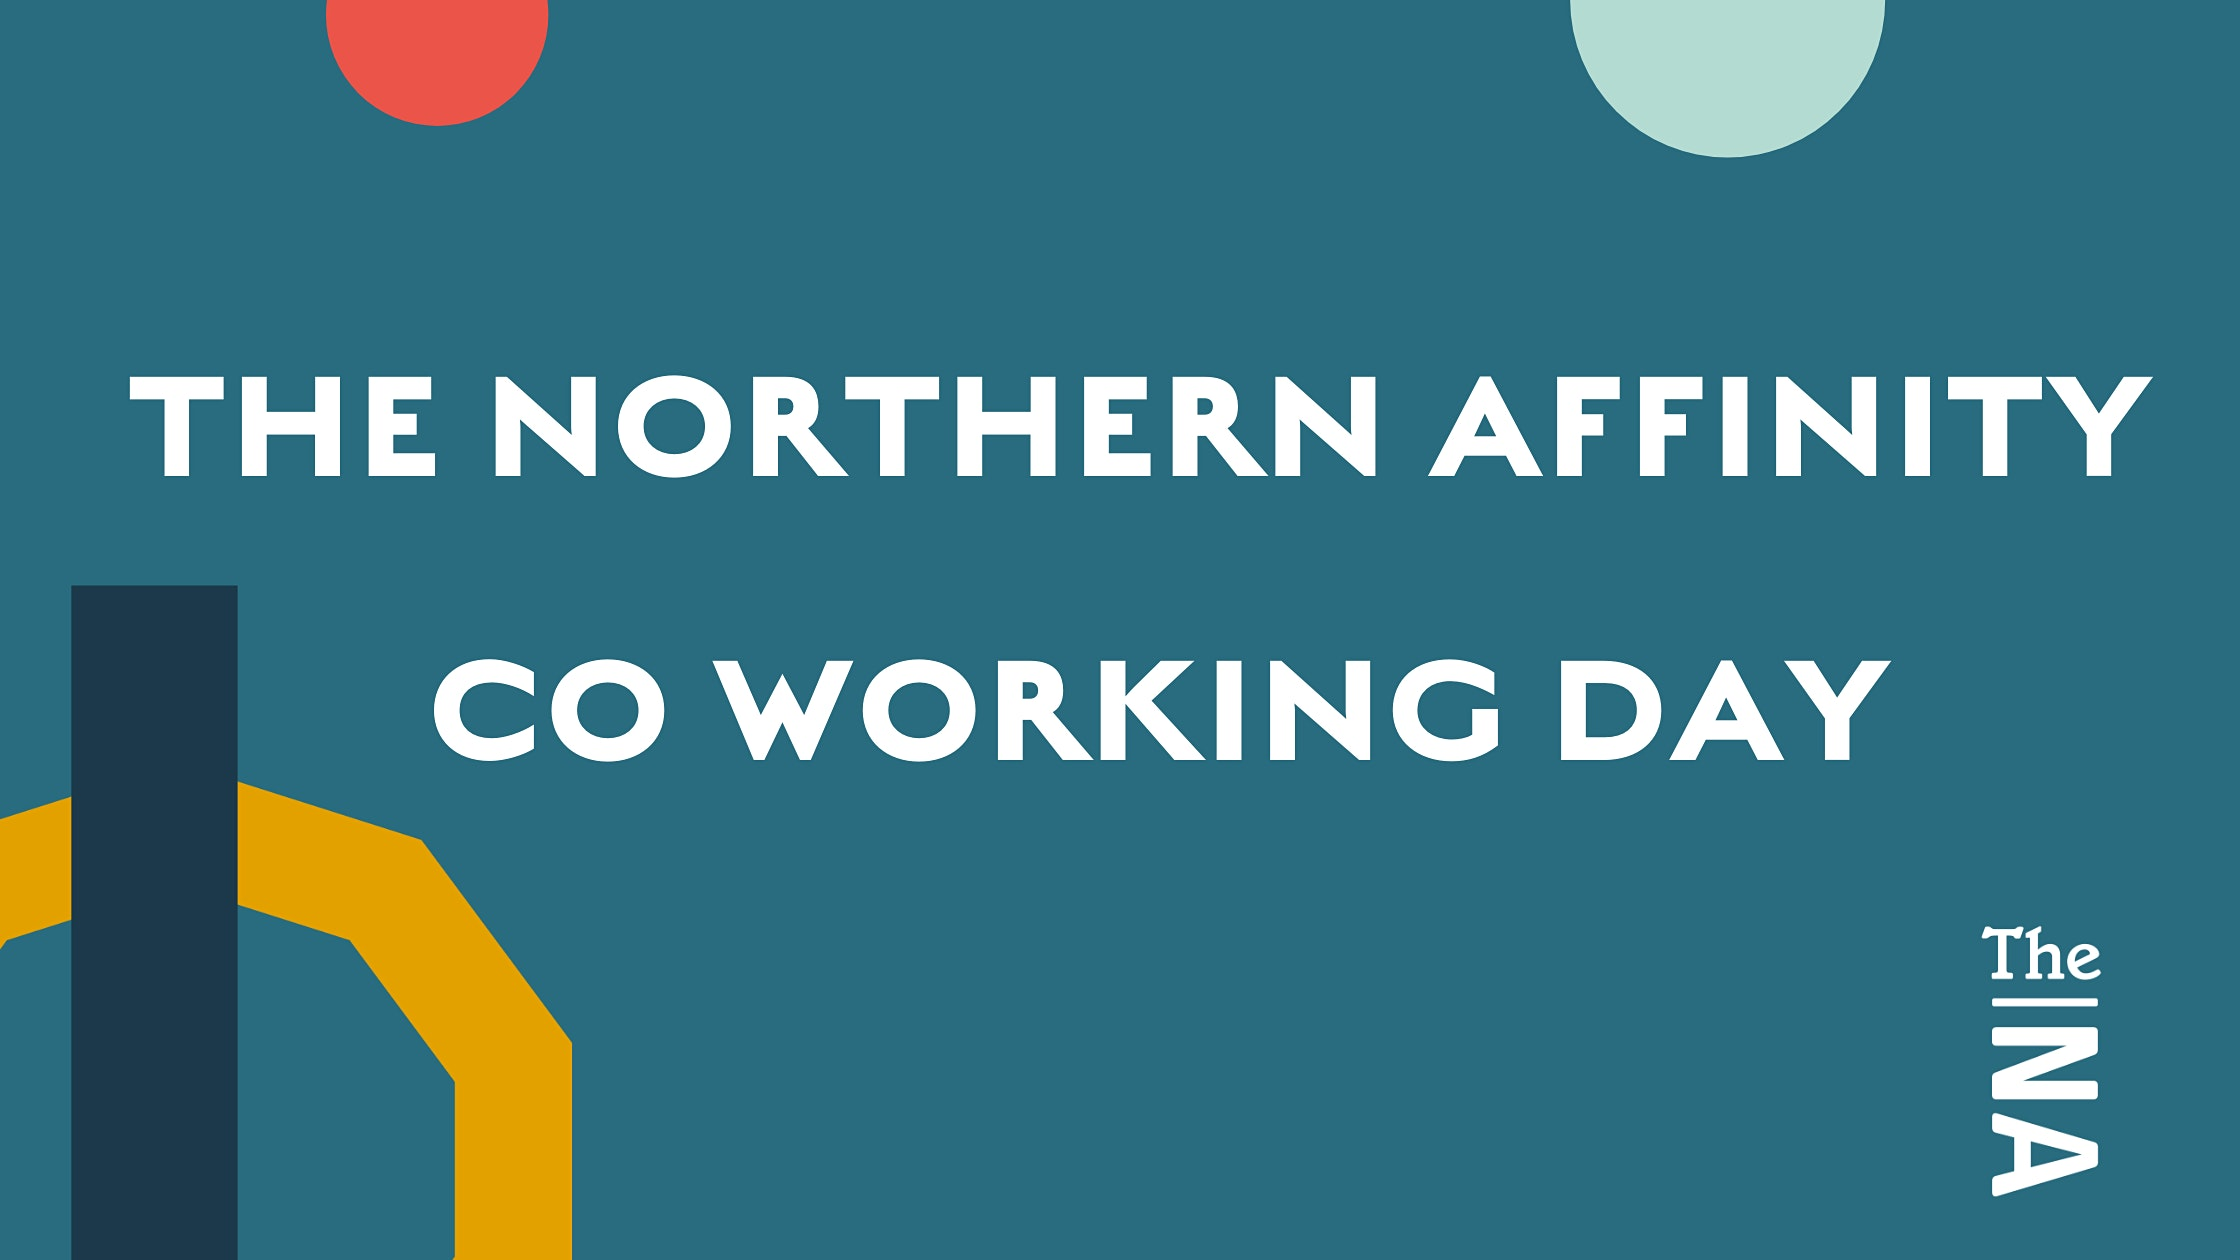 The Northern Affinity Co Working Day @ Clockwise Leeds